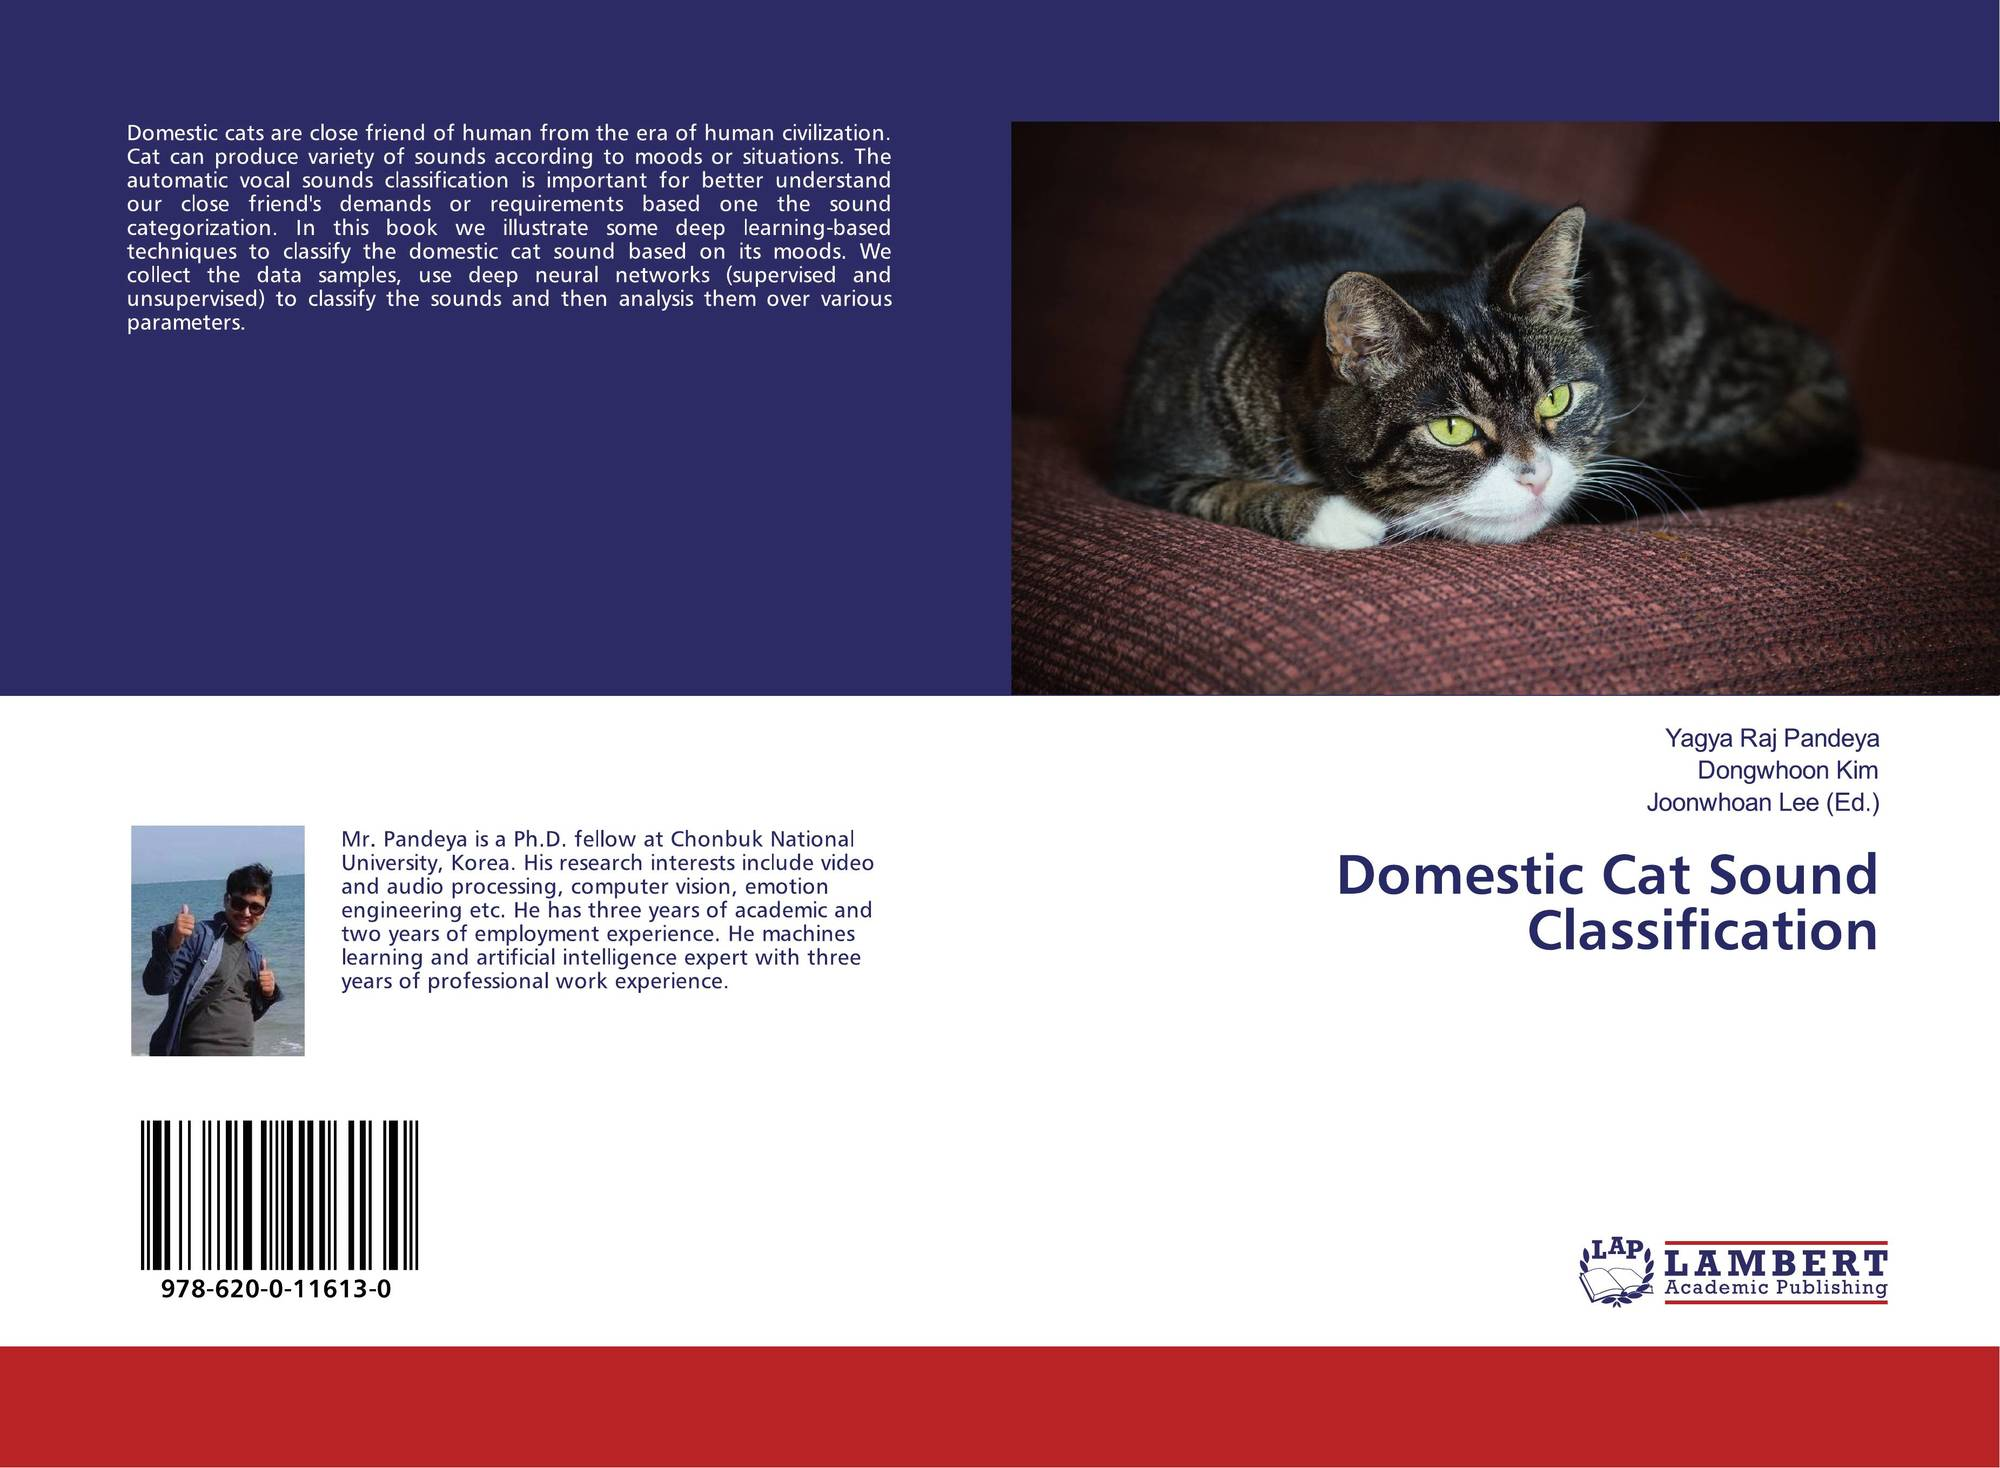 Domestic Cat Sound Classification, 978-620-0-11613-0